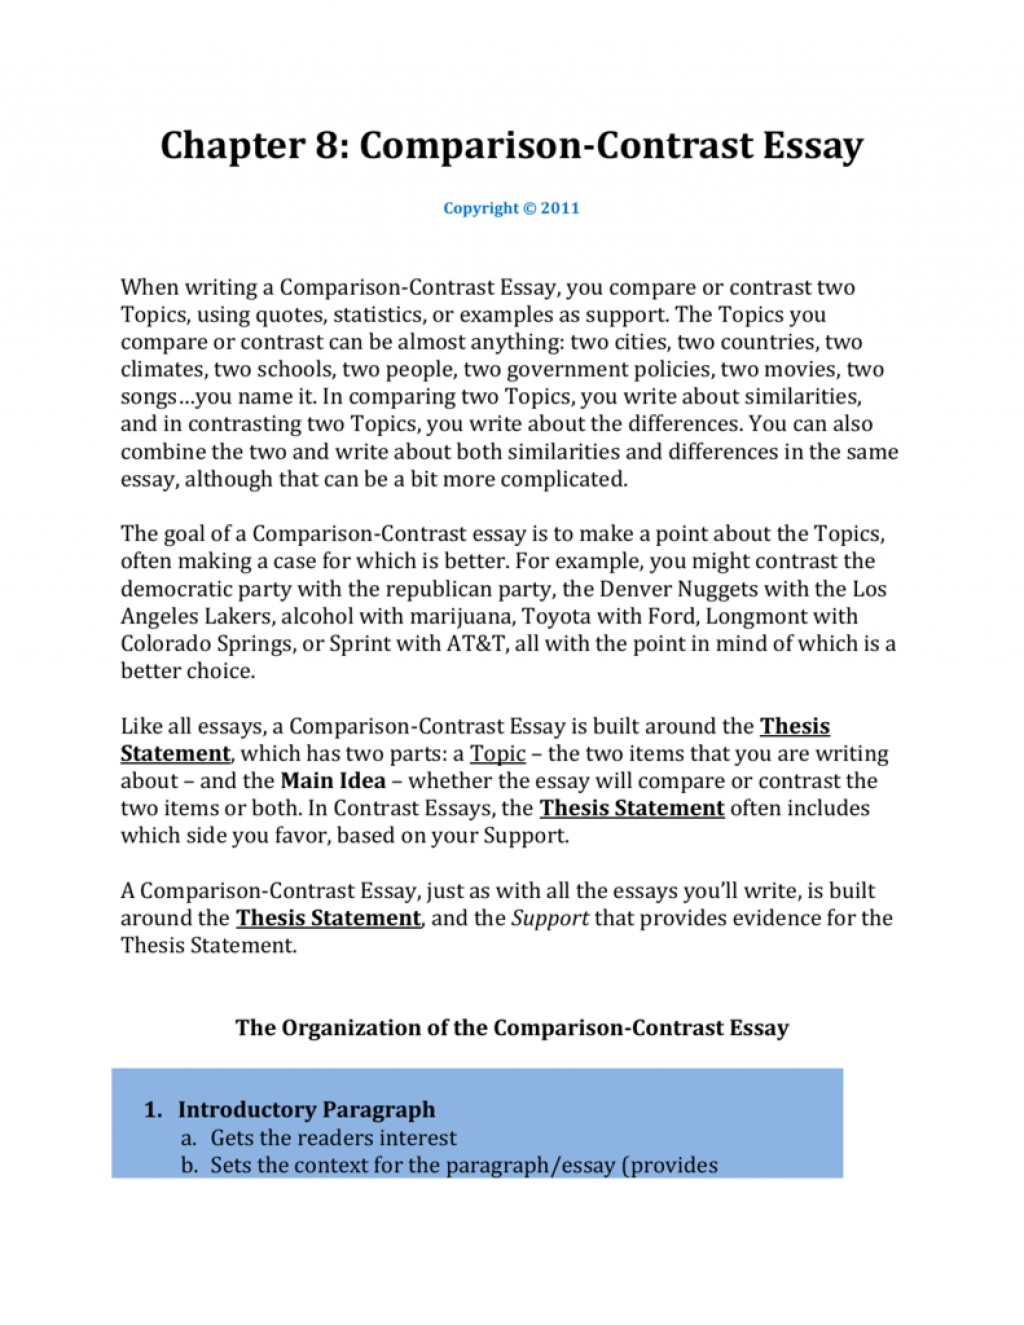 015 How To Conclude Compare And Contrast Essay 007207405 1 Fantastic A Start Writing Comparison Write Begin Large